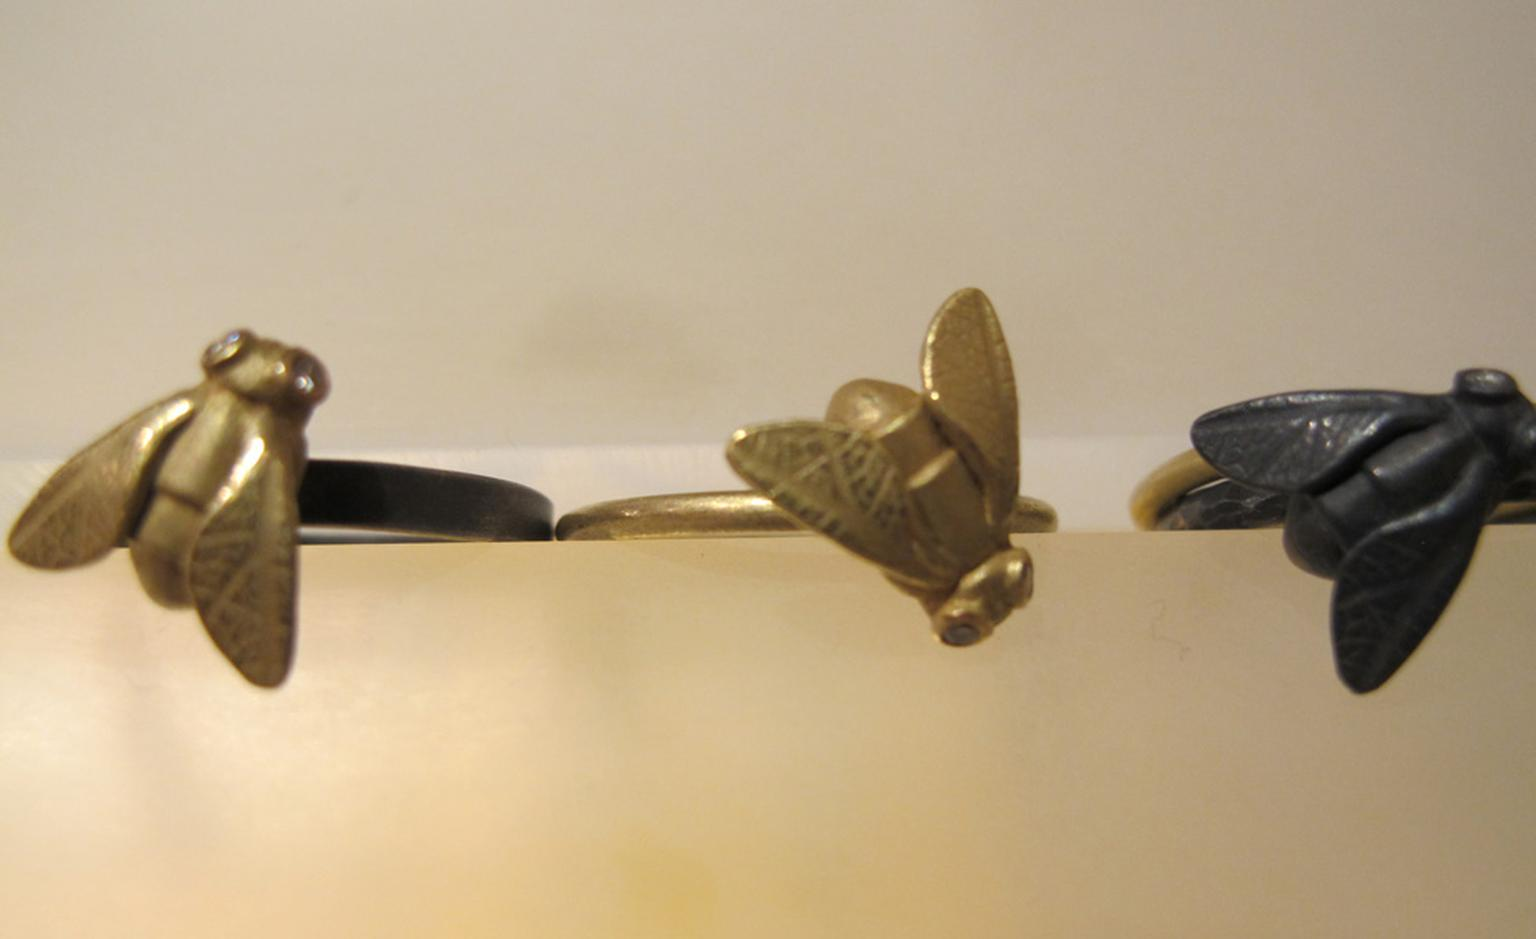 A small swarm of Zoe Arnold's Fly rings in gold and silver with diamond eyes from £295 in gold or £195 in silver.